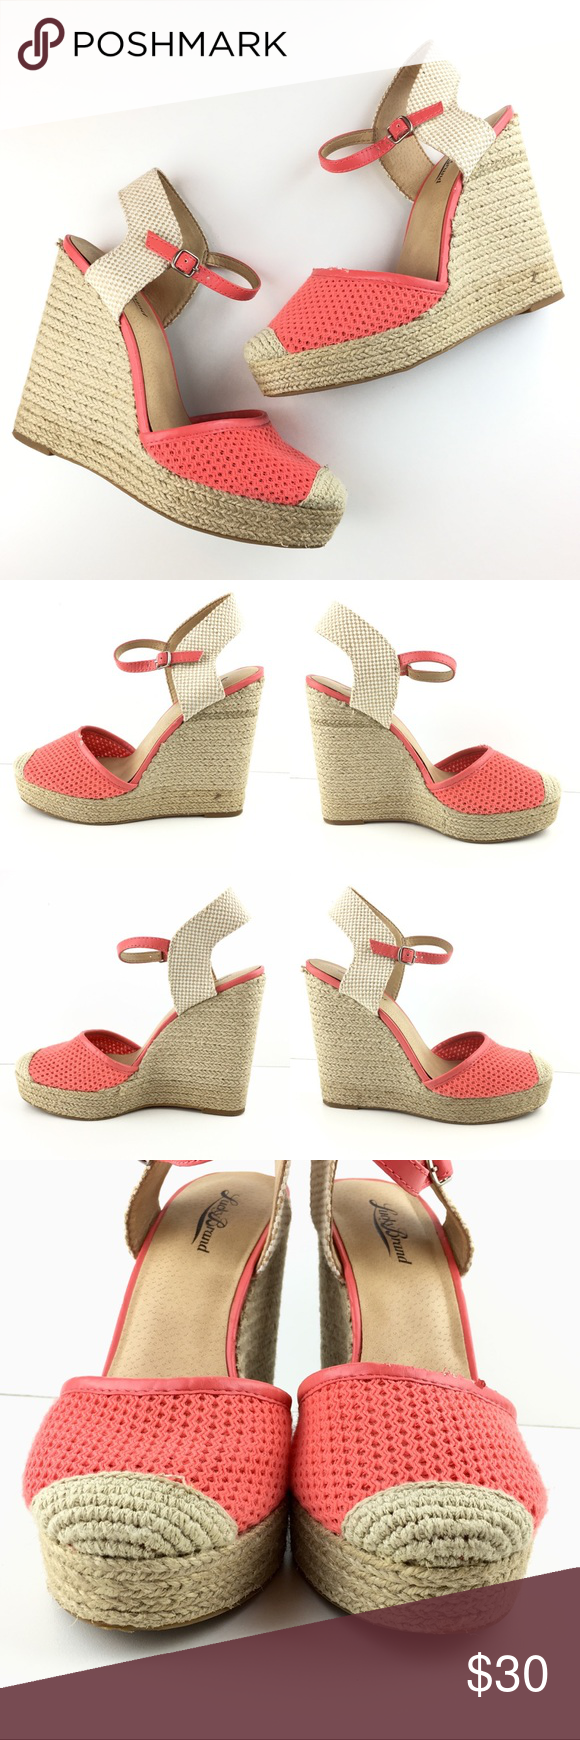 d4718078726 Lucky Brand Reandra Woven Espadrille Wedges Lucky Brand espadrilles -Style   Reandra  Top of the left shoe has an area wear the material is slightly  worn.